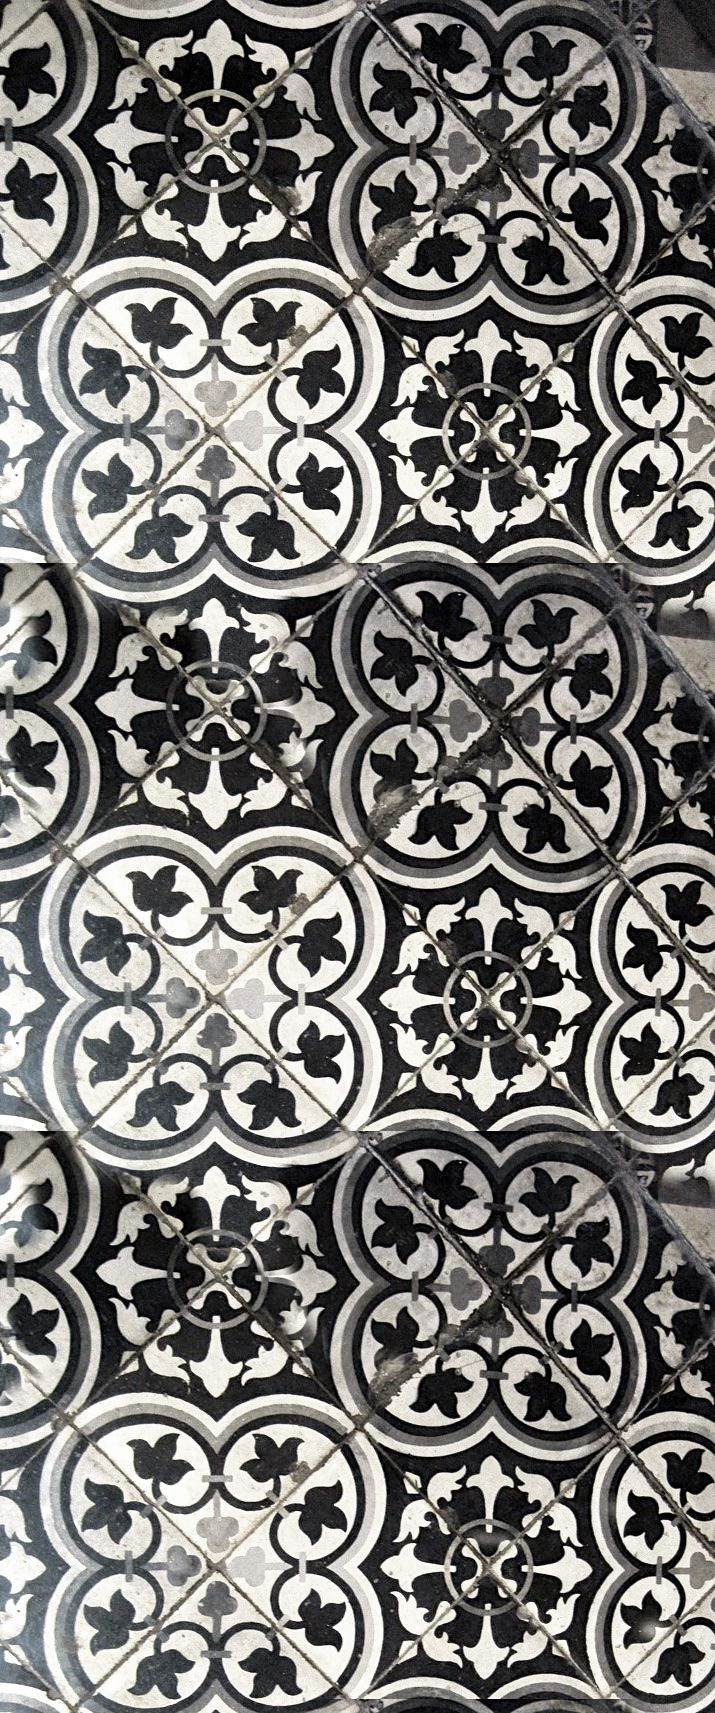 767 best natural terra images on pinterest bath room Moroccan ceramic floor tile